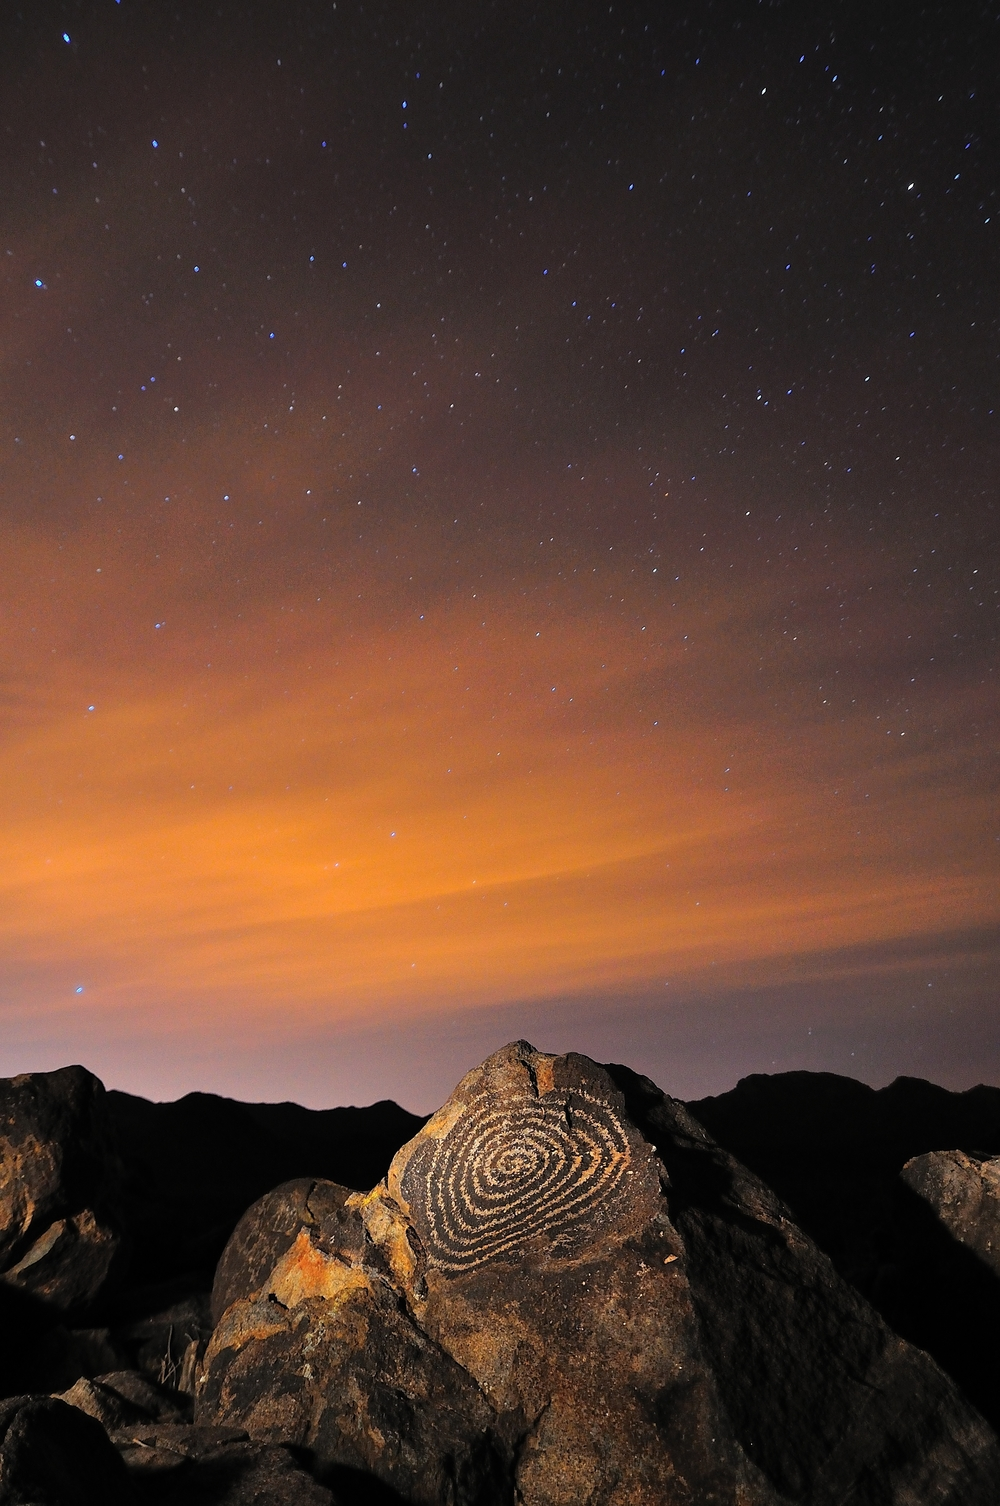 STARS OVER SIGNAL HILL PETROGLYPH - (PHOTO: RCole3/SHUTTERSTOCK)